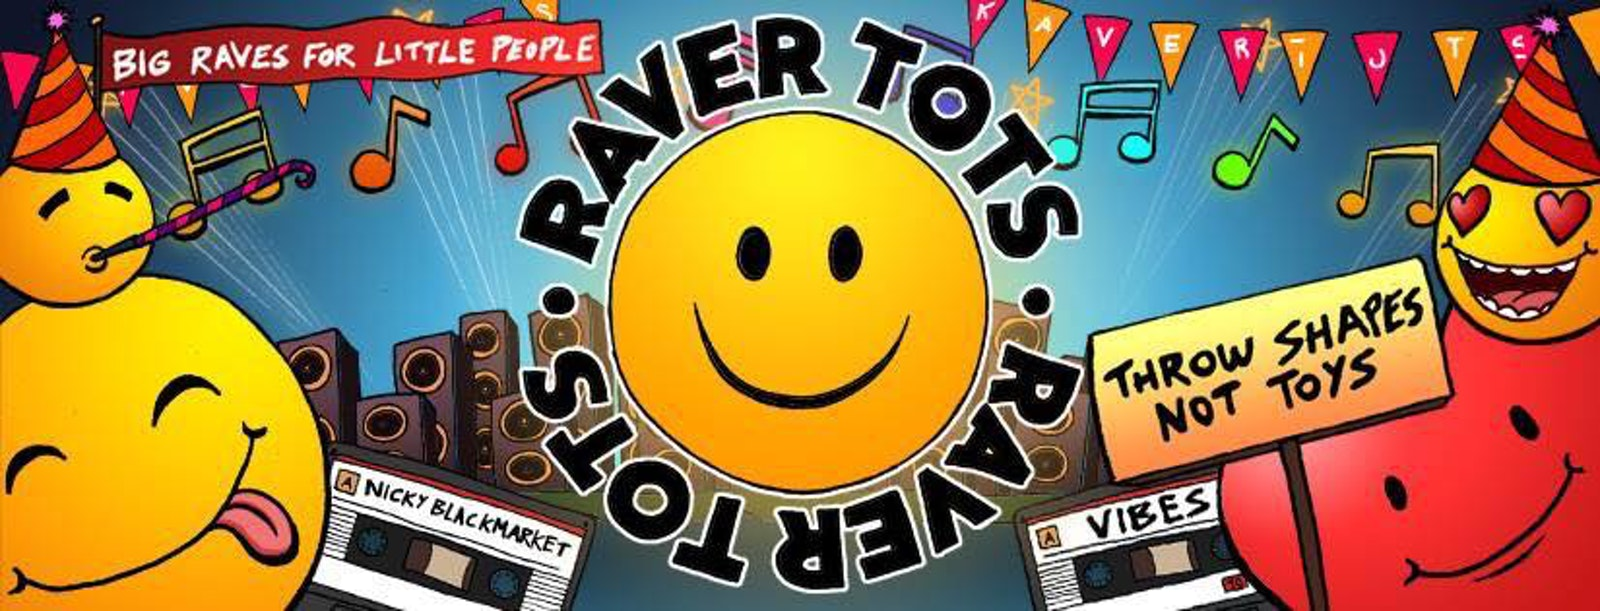 Raver Tots Tunbridge Wells